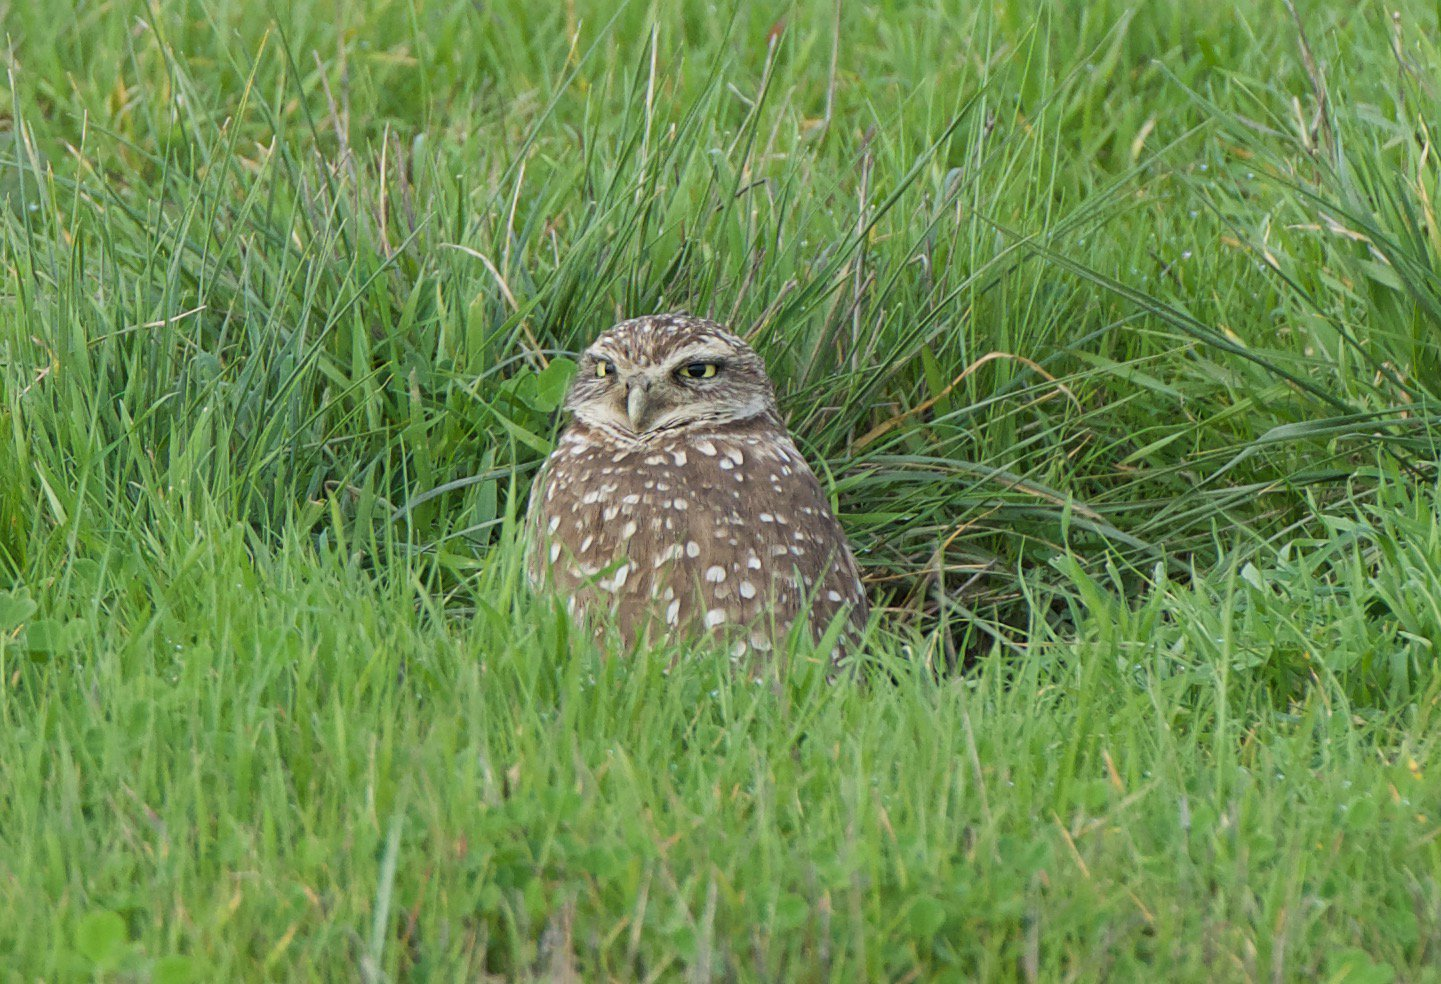 And finally for today's #Superbowl vs #Superb_Owl challenge - took this pic of a burrowing owl in #DavisCA a few minutes ago https://t.co/uO7dQajkeX